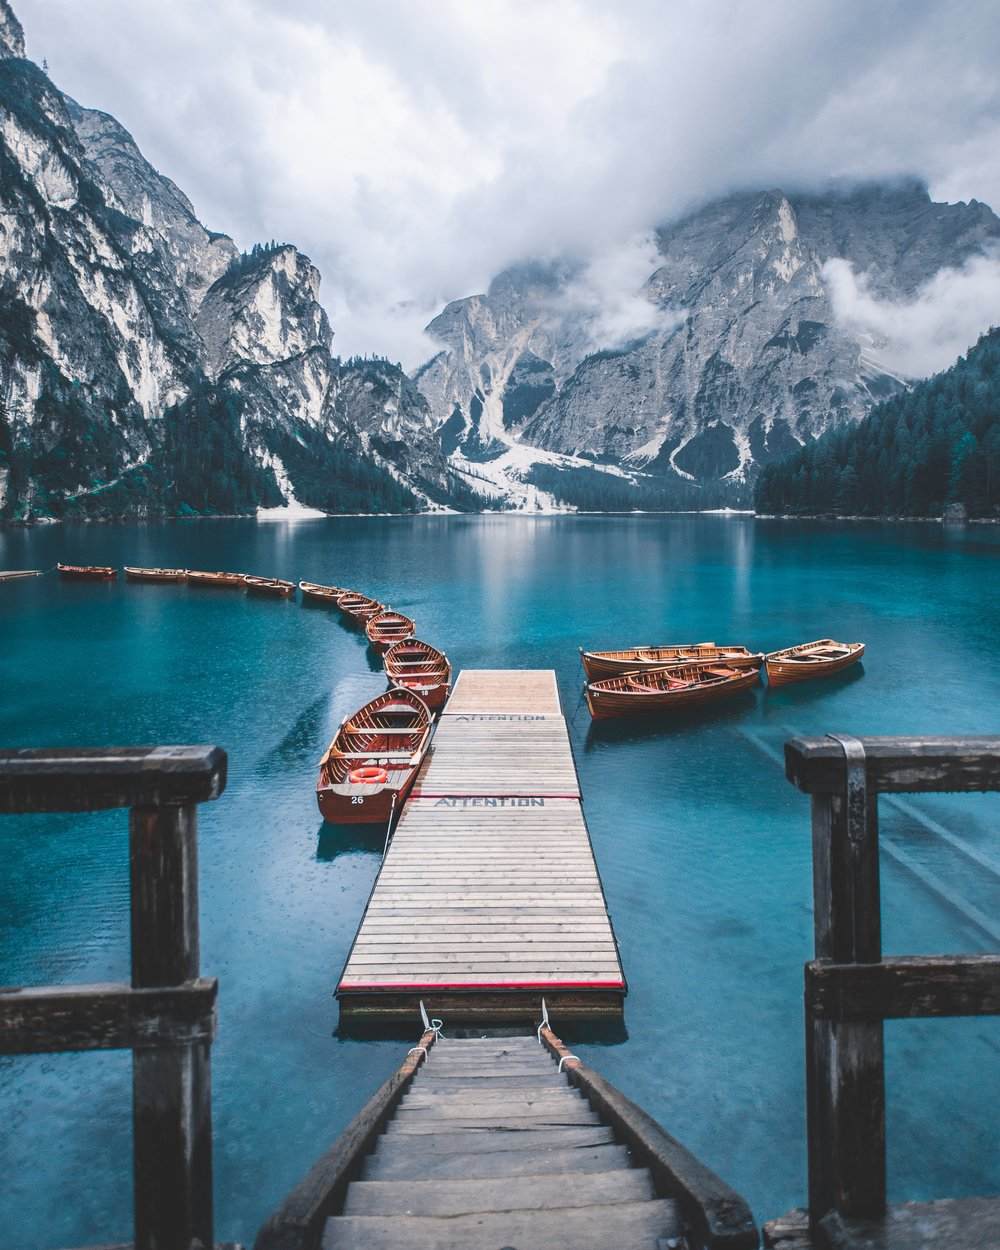 wooden dock leading out to a bright blue, icy lake surrounded by snowy mountains